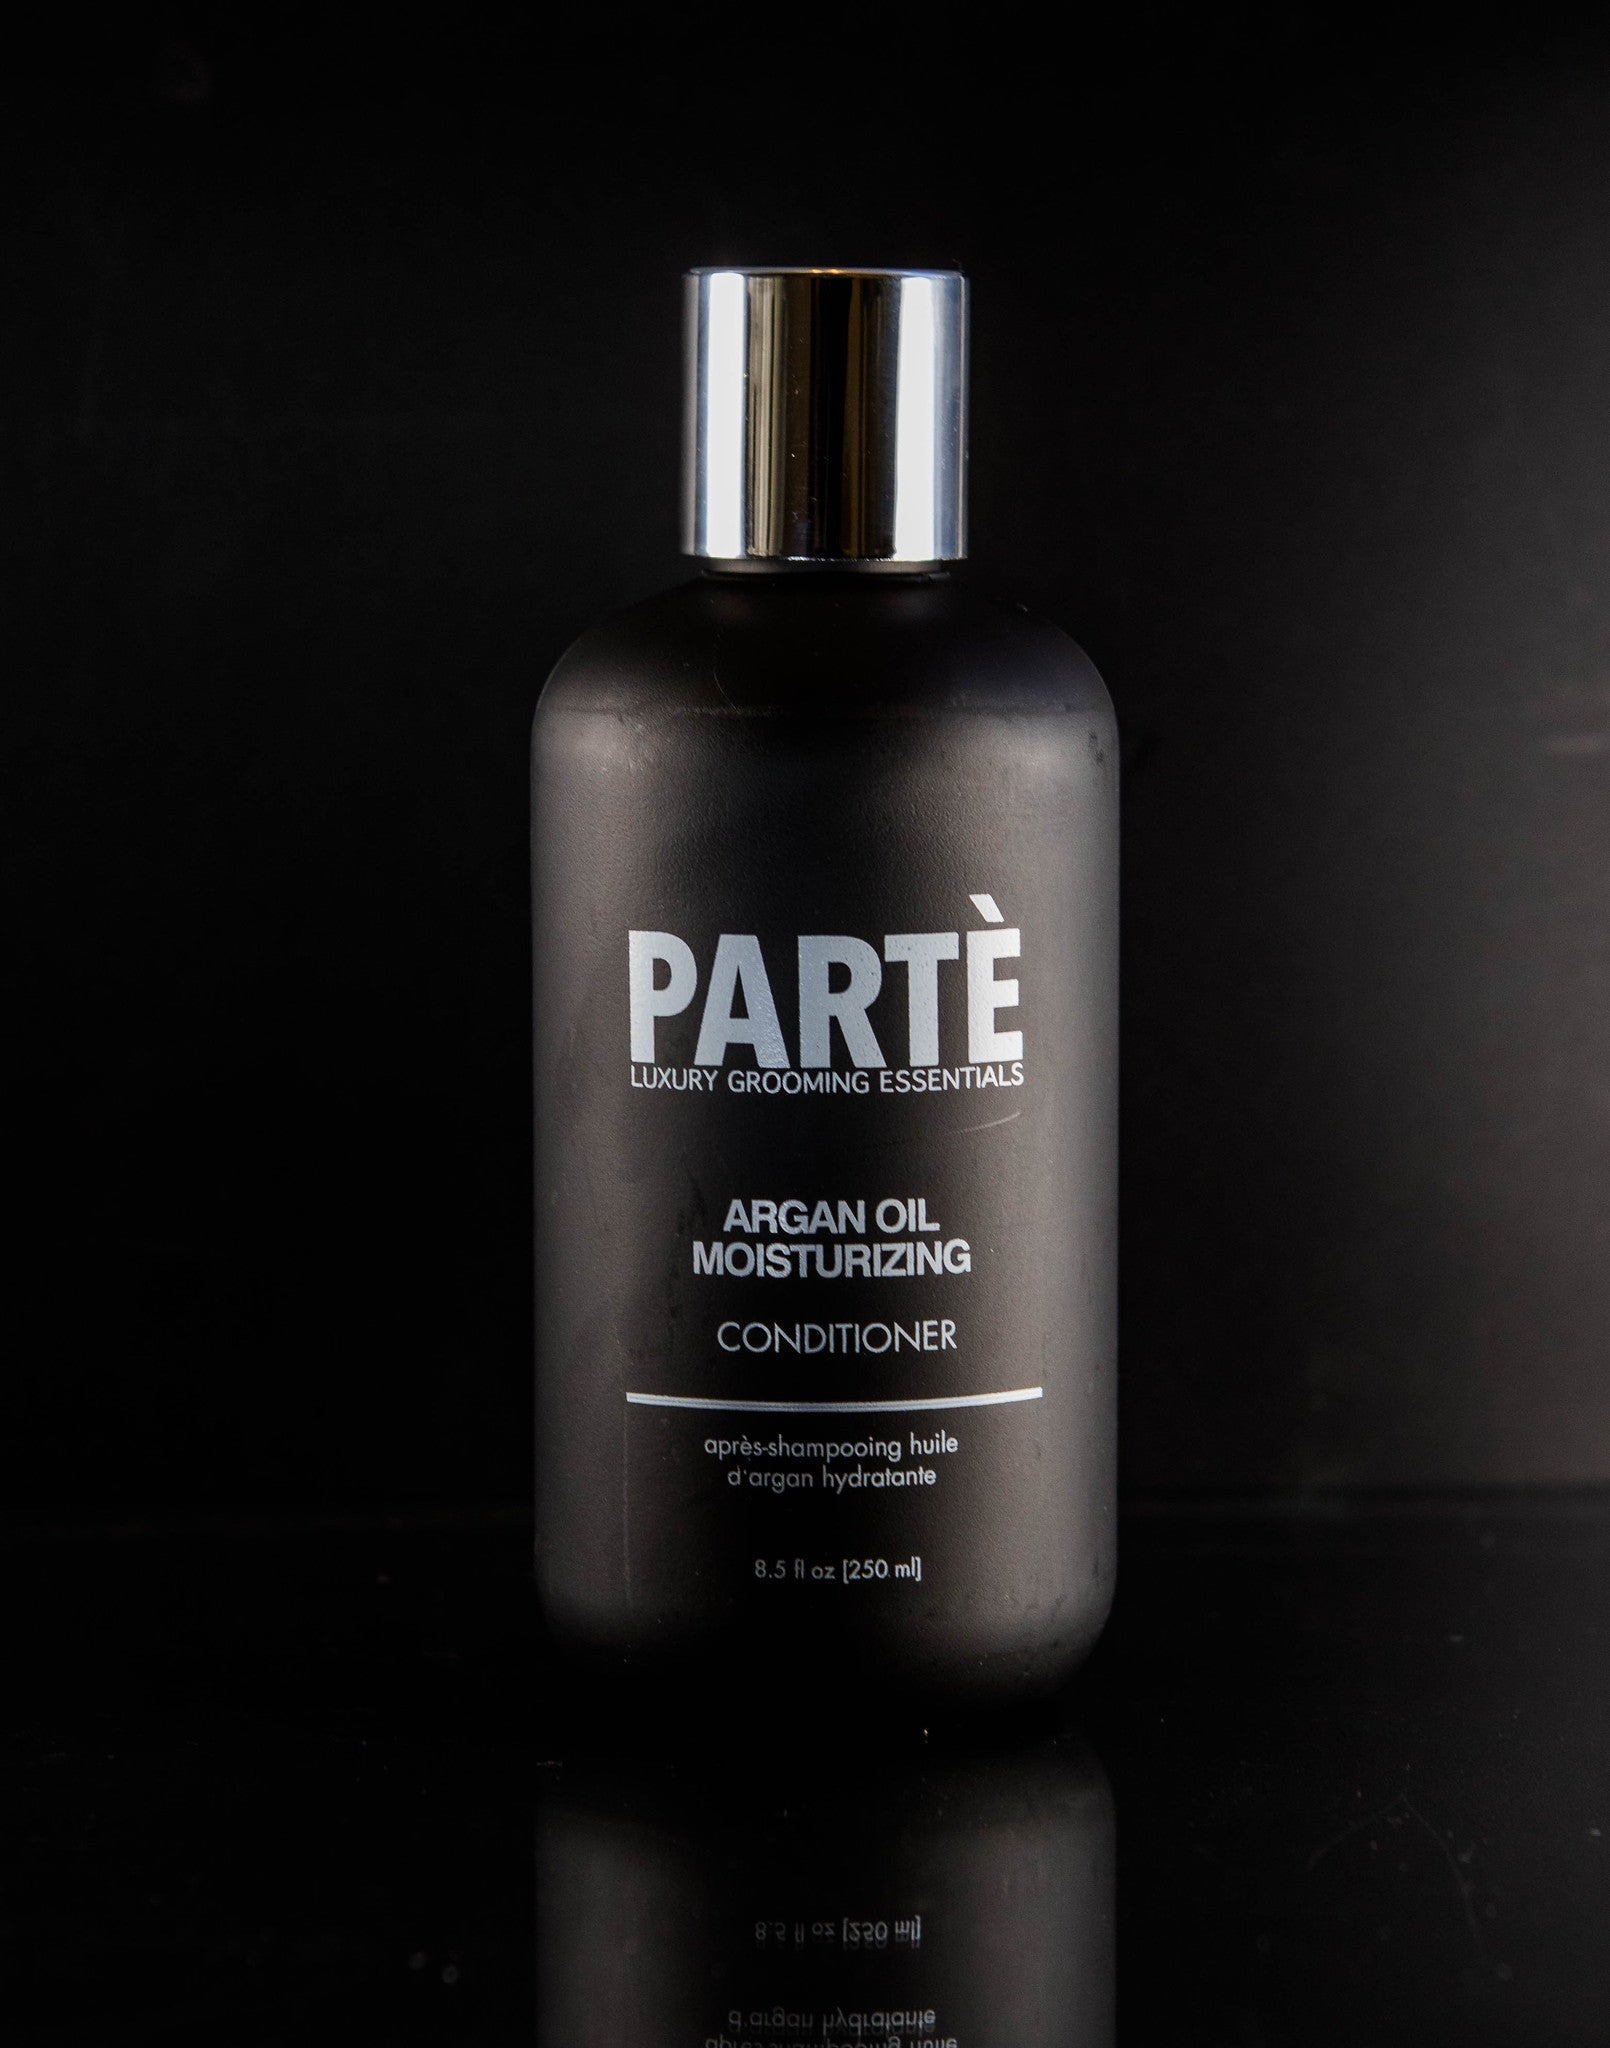 PARTÈ ARGAN OIL MOISTURIZING CONDITIONER + FREE SHIPPING IN THE US